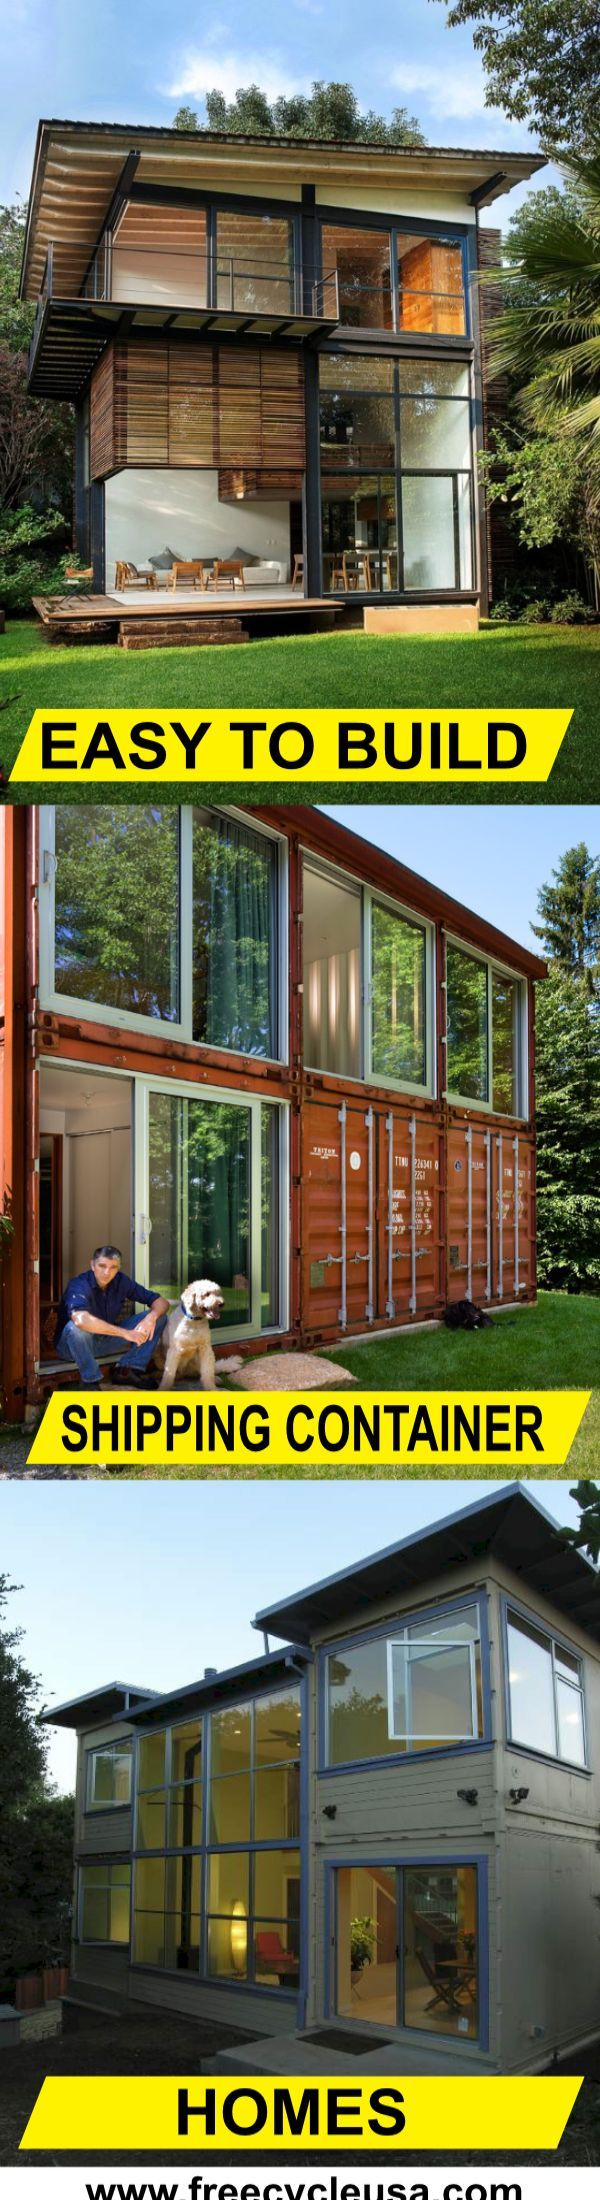 55 best shipping container homes images on pinterest | shipping